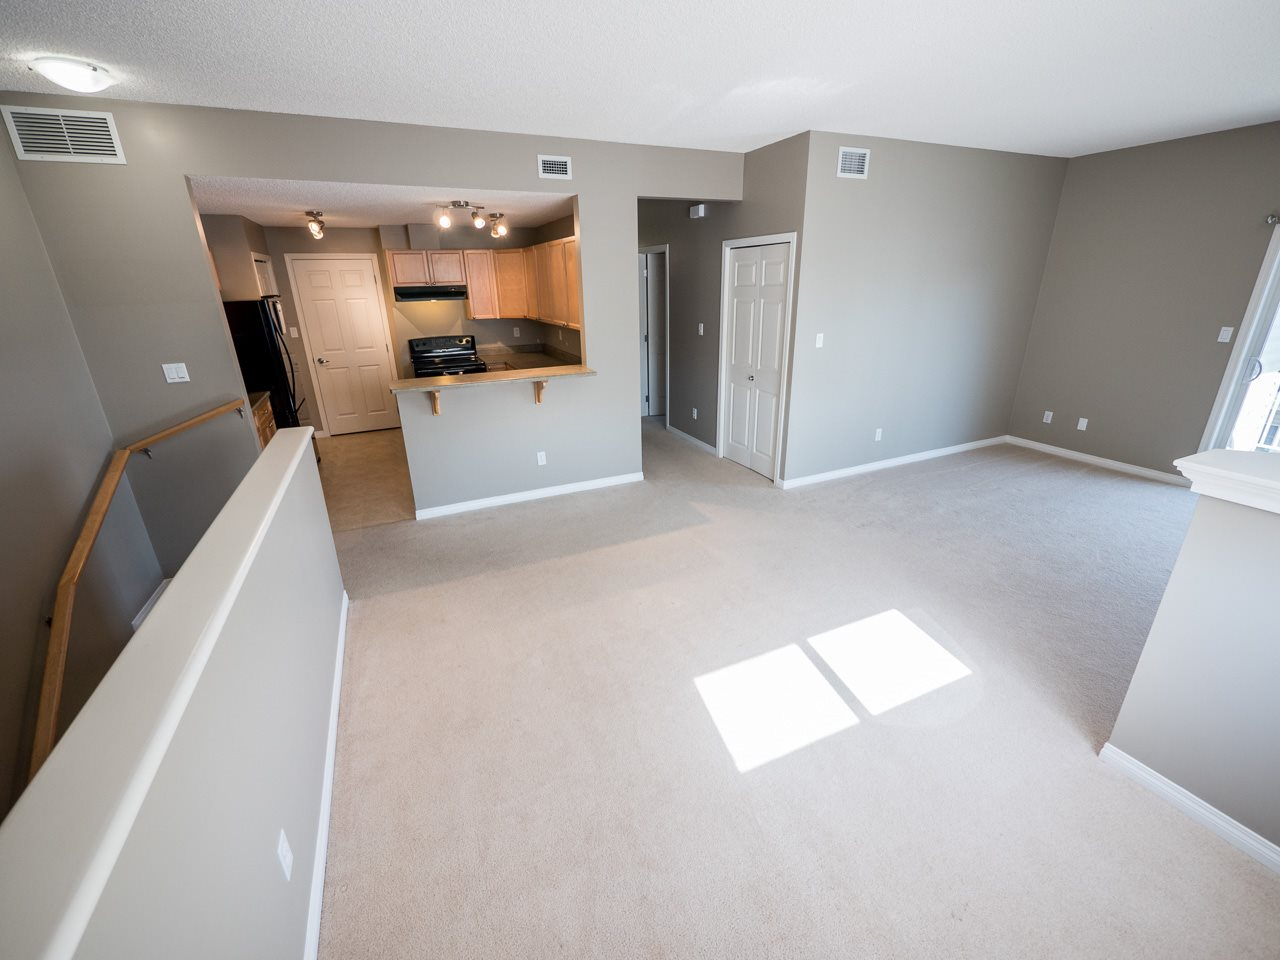 Photo 8: 71 3040 SPENCE Way in Edmonton: Zone 53 Townhouse for sale : MLS(r) # E4063695